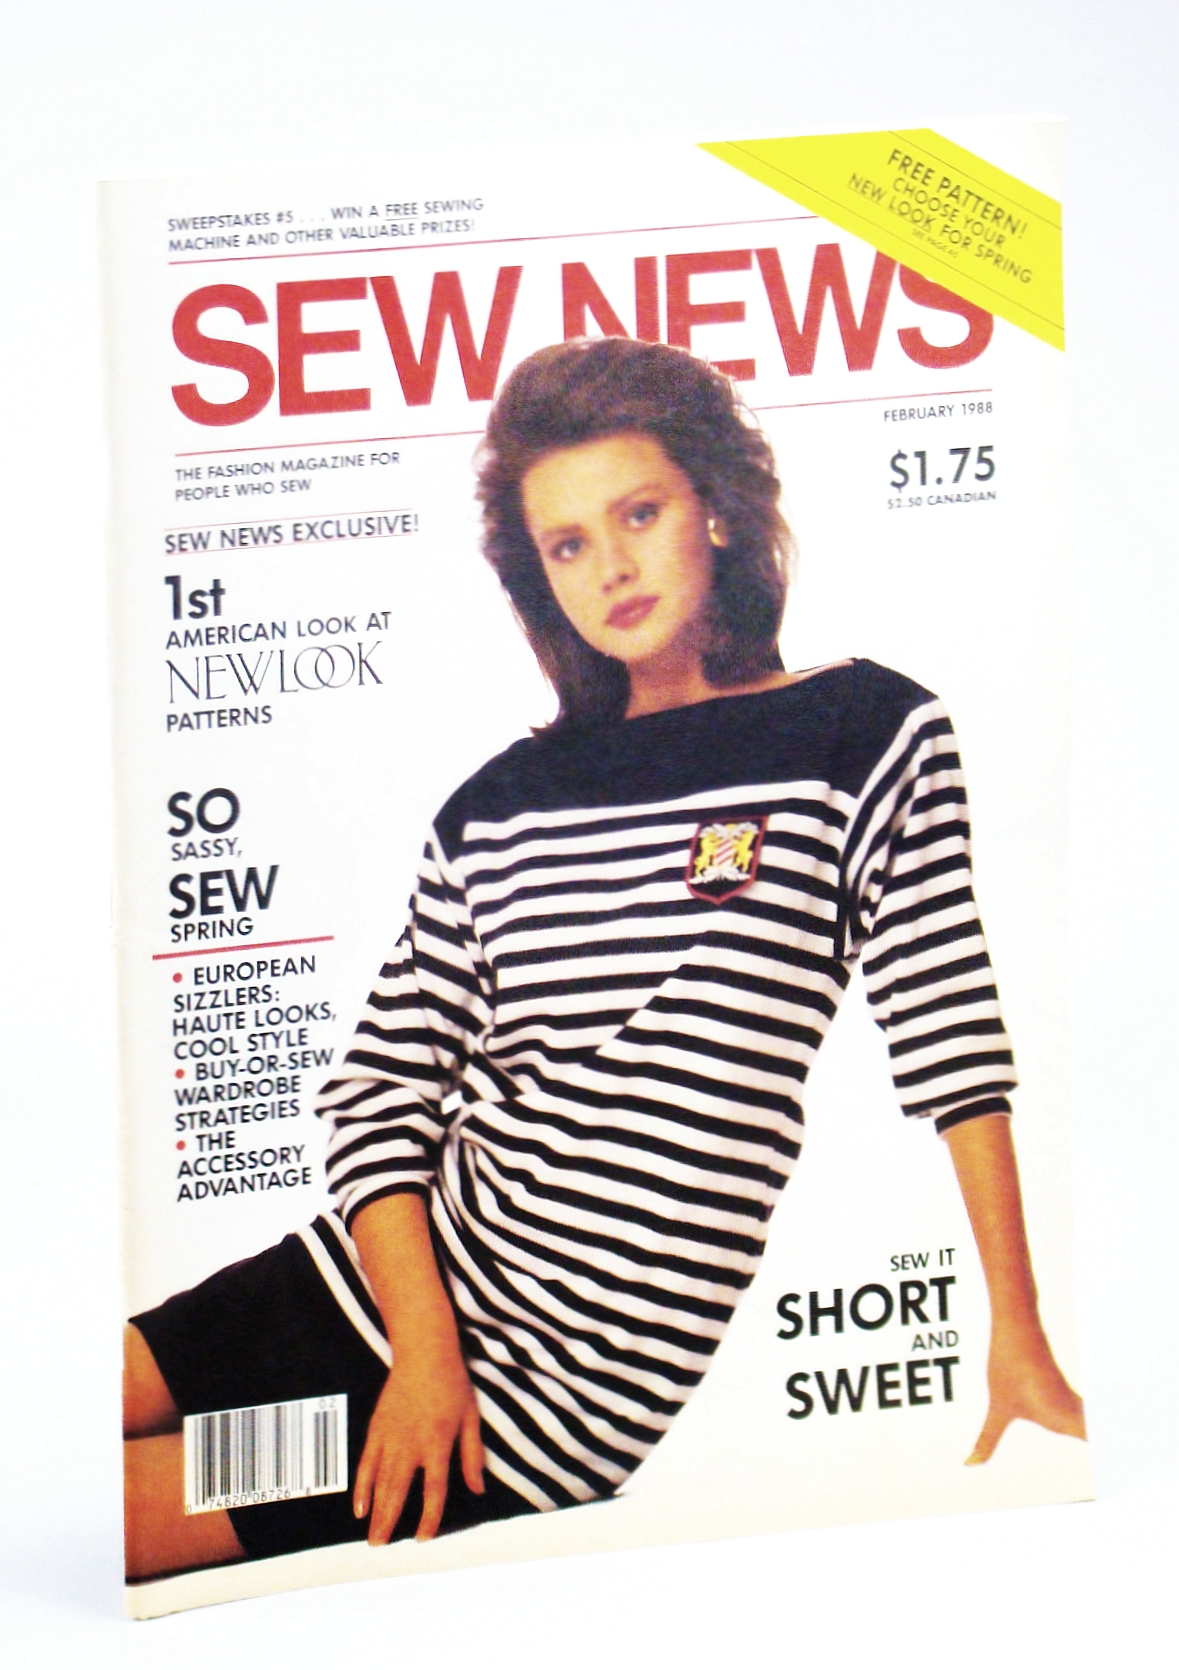 Image for Sew News - The Fashion Magazine For People Who Sew, Number 65, February [Feb.] 1988 - Diana McDermott